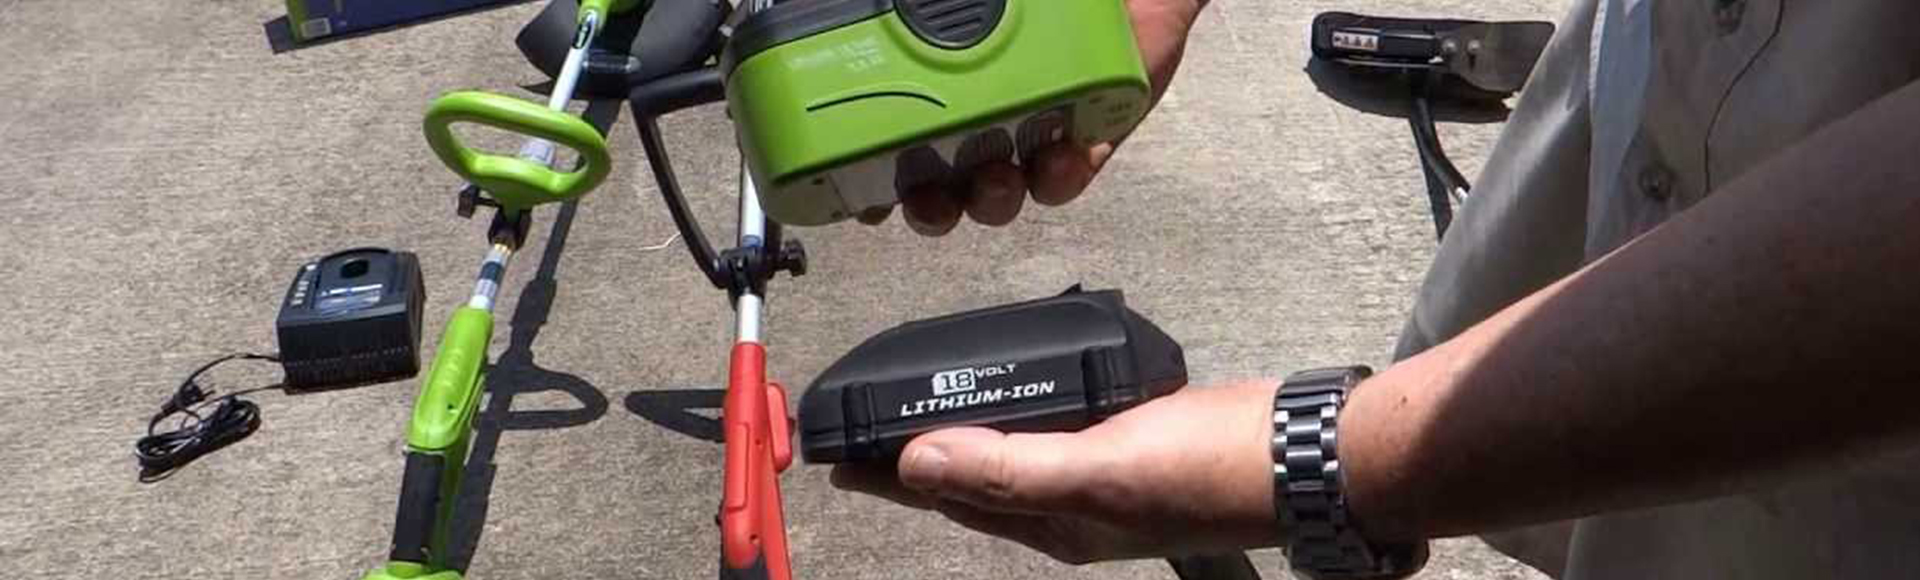 Battery Powered Trimmers